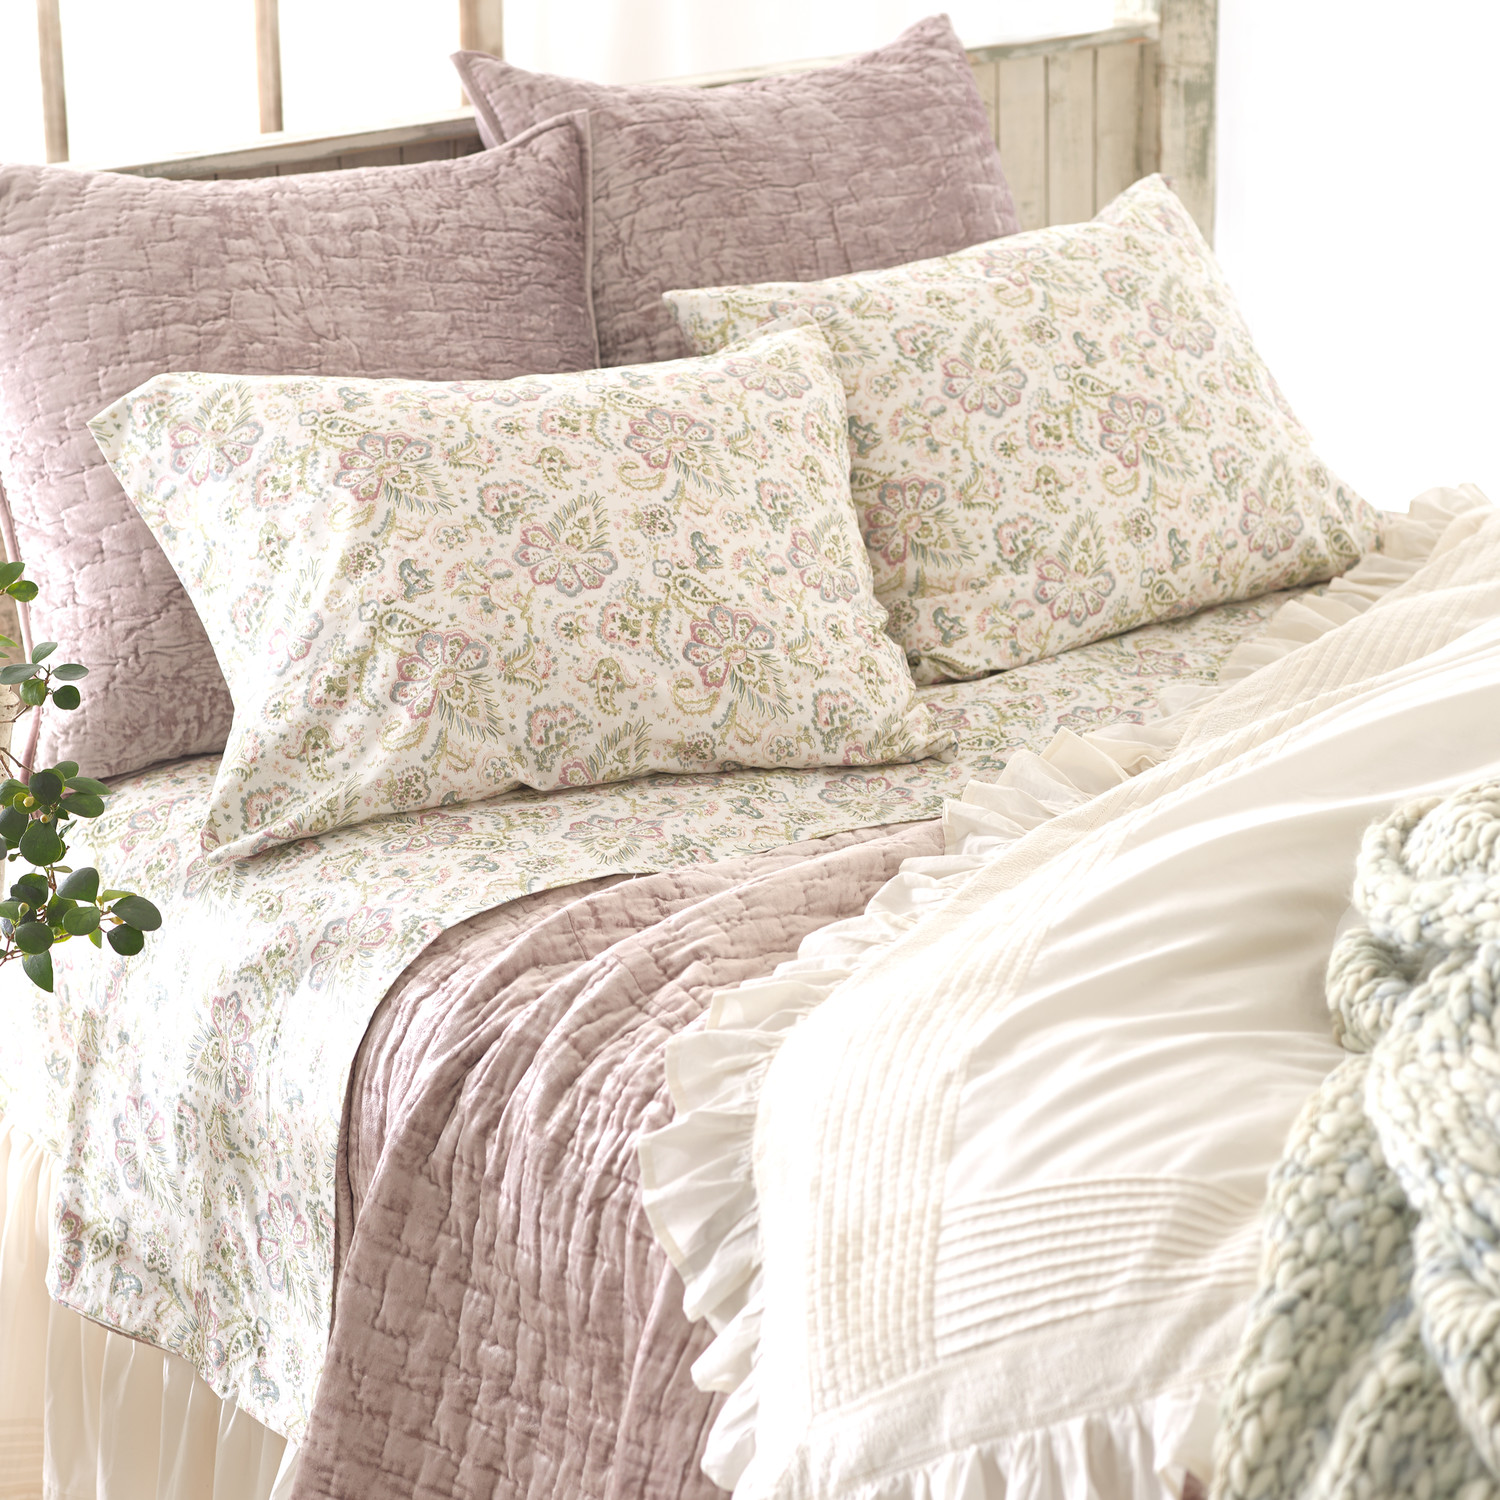 Lovely Pine Cone Hill Bedding For Interesting Bed Ideas: Chic Pine Cone Hill Fiona Duvet Cover In White And Purple With Floral Pattern For Bedding Ideas